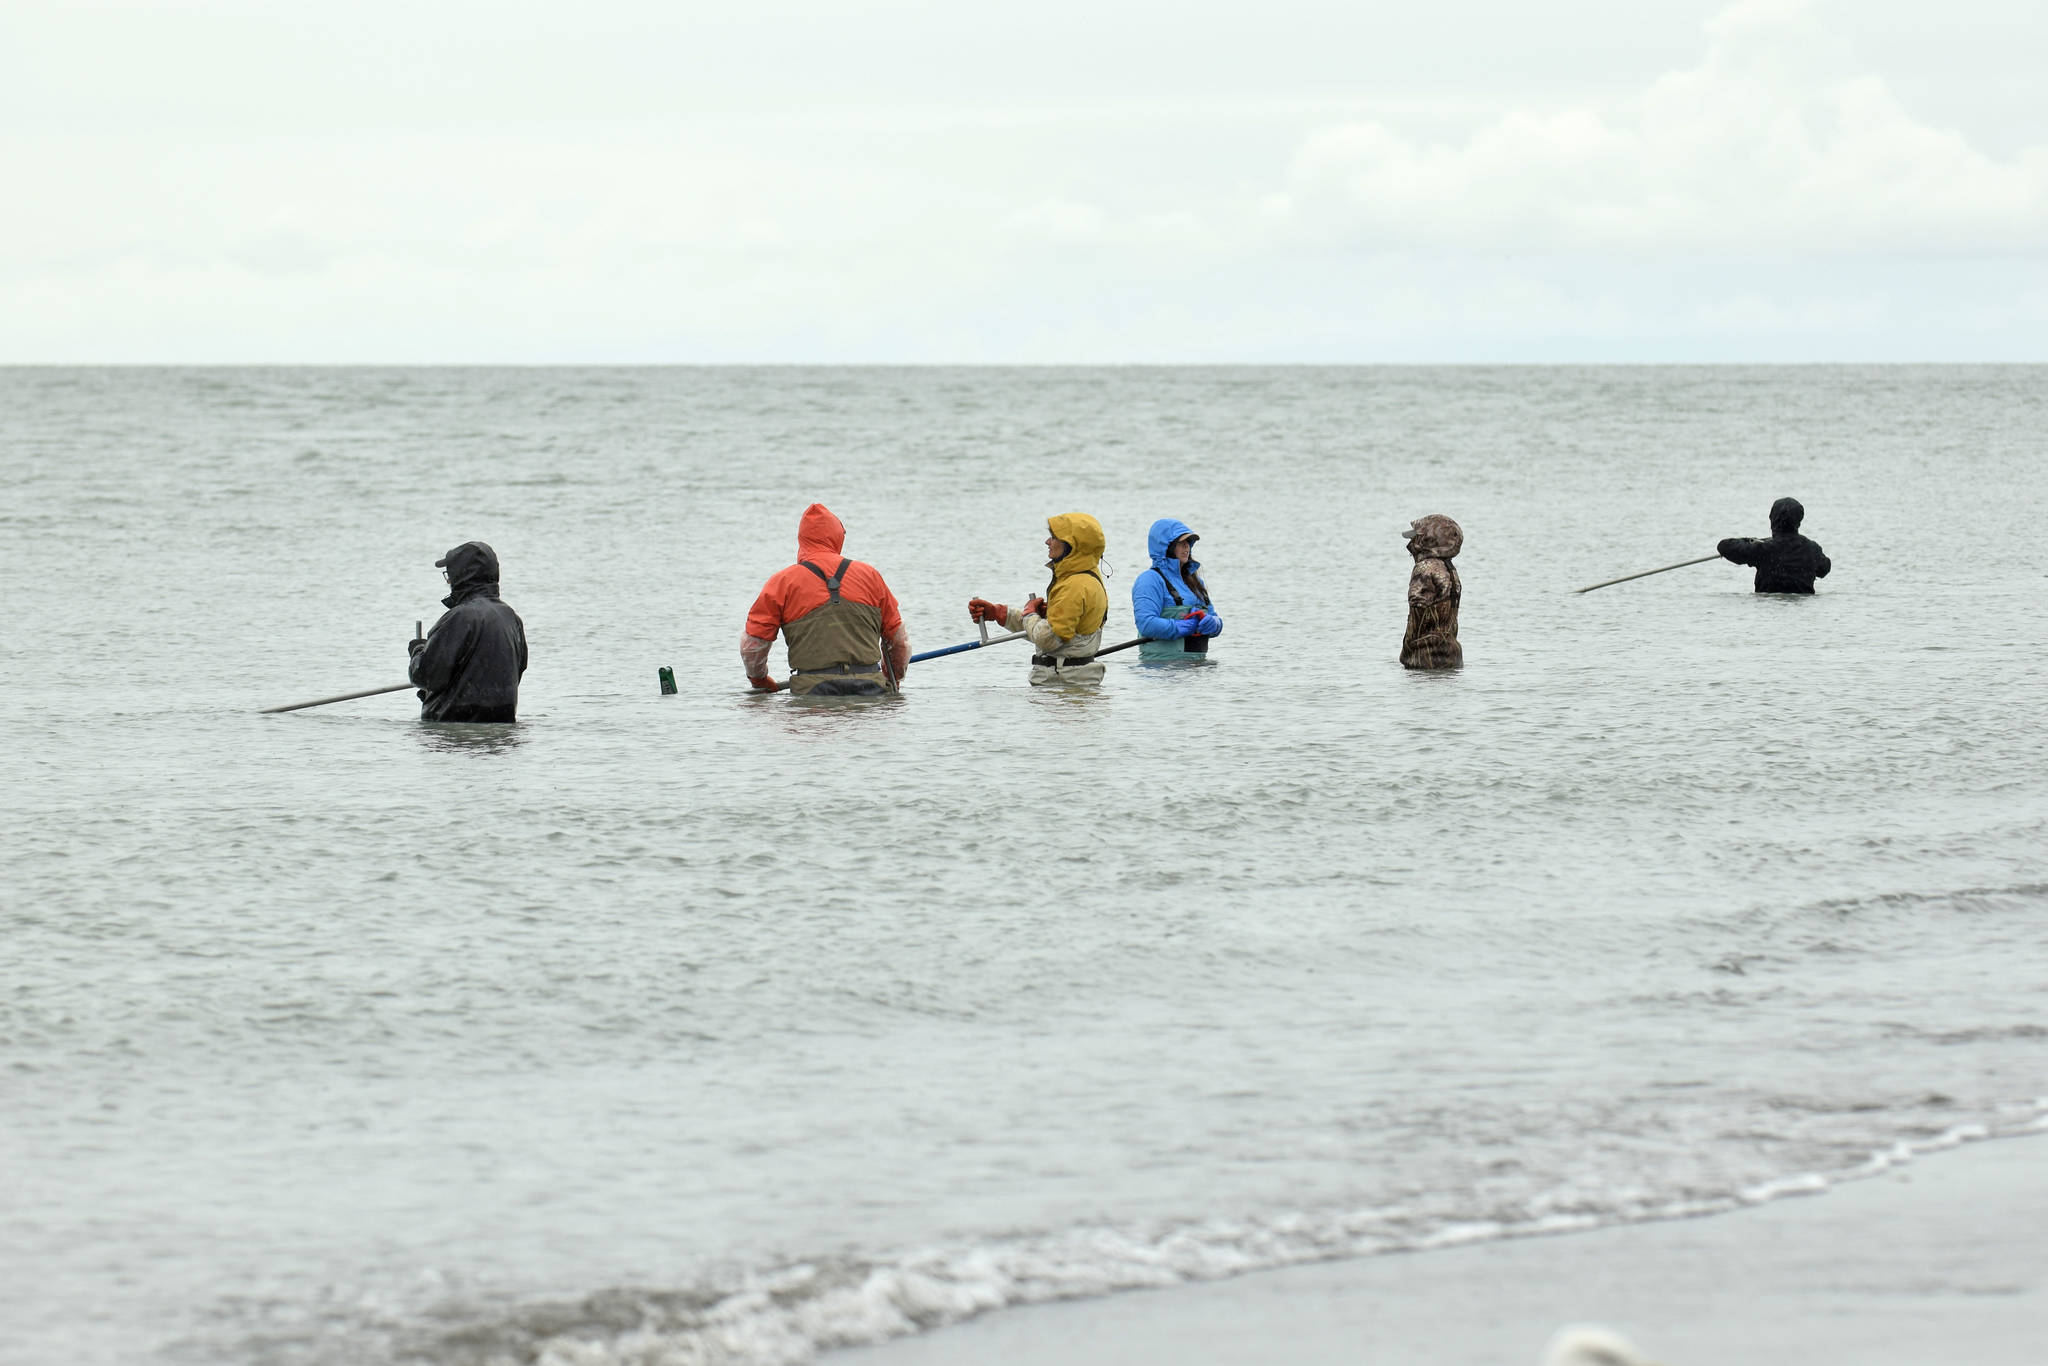 Dipnetters wade into the Cook Inlet in hopes of catching salmon on the first day of dipnetting season on Tuesday, July 10, 2018, in Kenai, Alaska. (Photo by Erin Thompson/Peninsula Clarion)